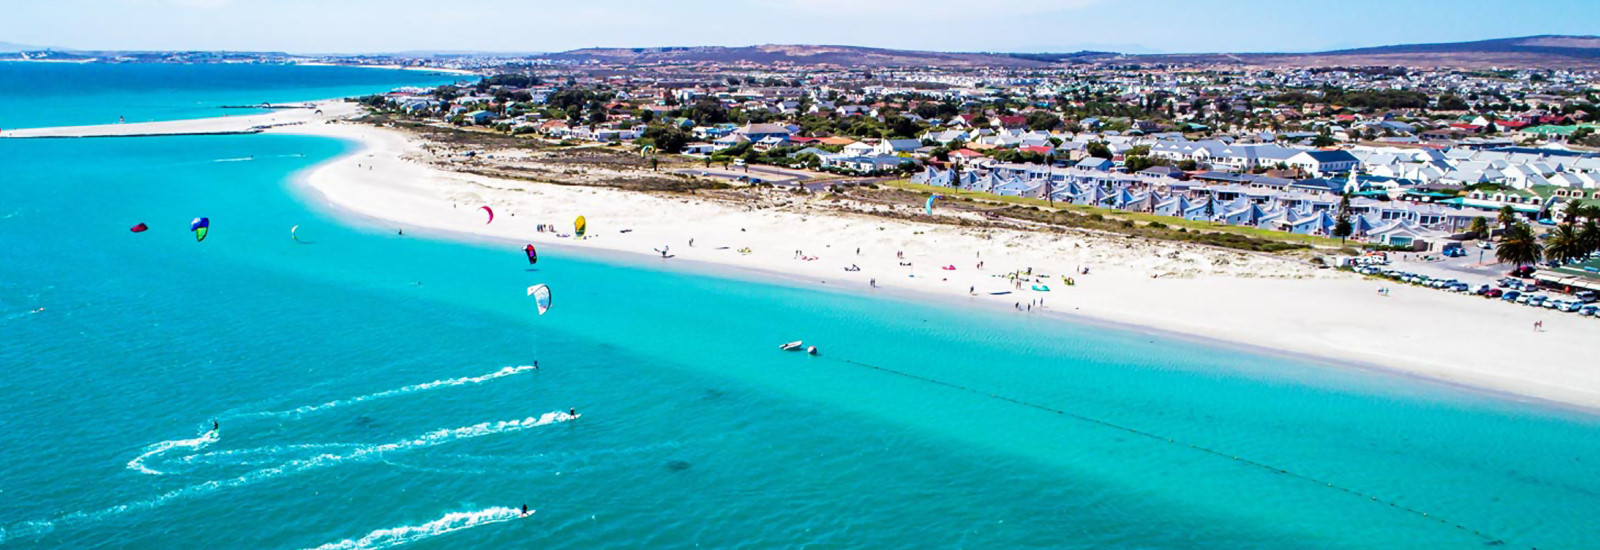 sa_west-coastai_langebaan